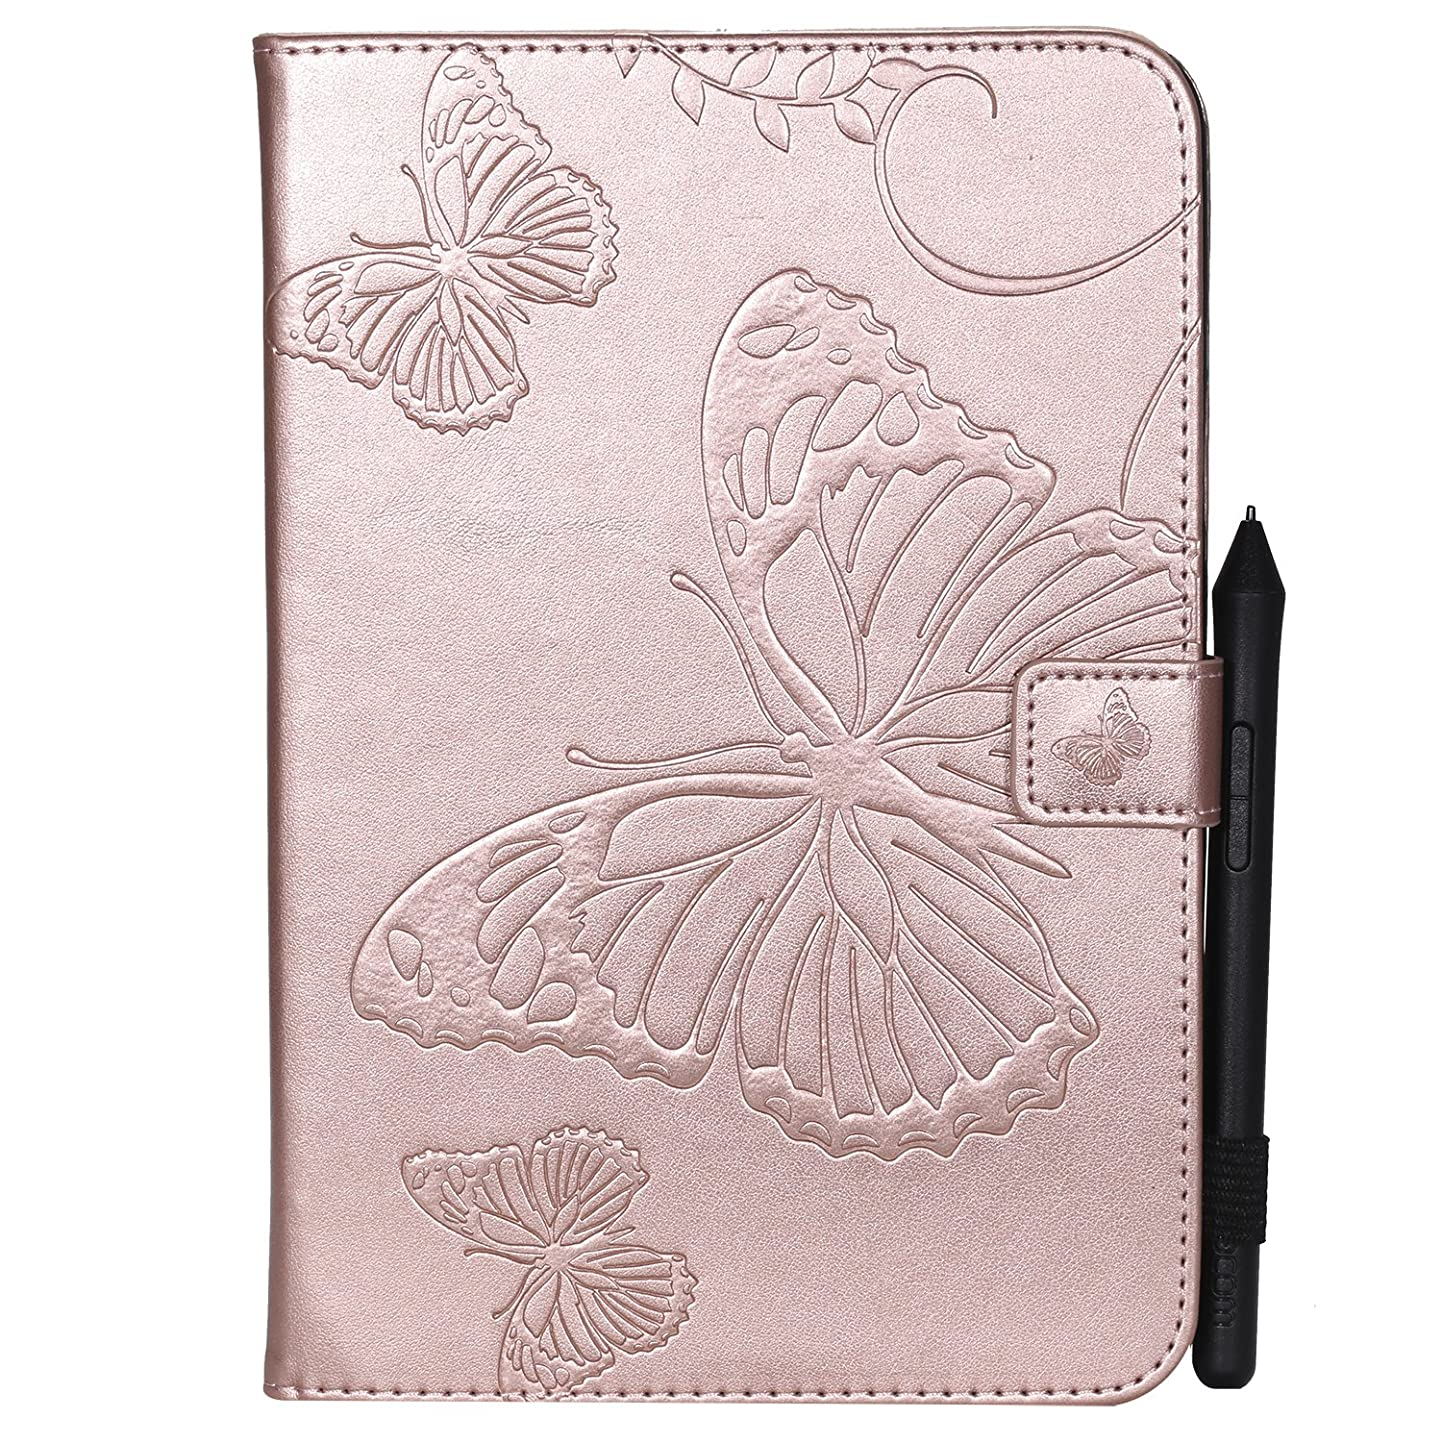 Shinyzone Tablet Leather Case for Samsung Galaxy Tab A 8.0 T350,Embossed Rose Gold Butterfly Pattern with Credit Card Slots and Pencil Holder,Auto Sleep and Wake Function Magnetic Flip Stand Cover rzyinyzkdfi0